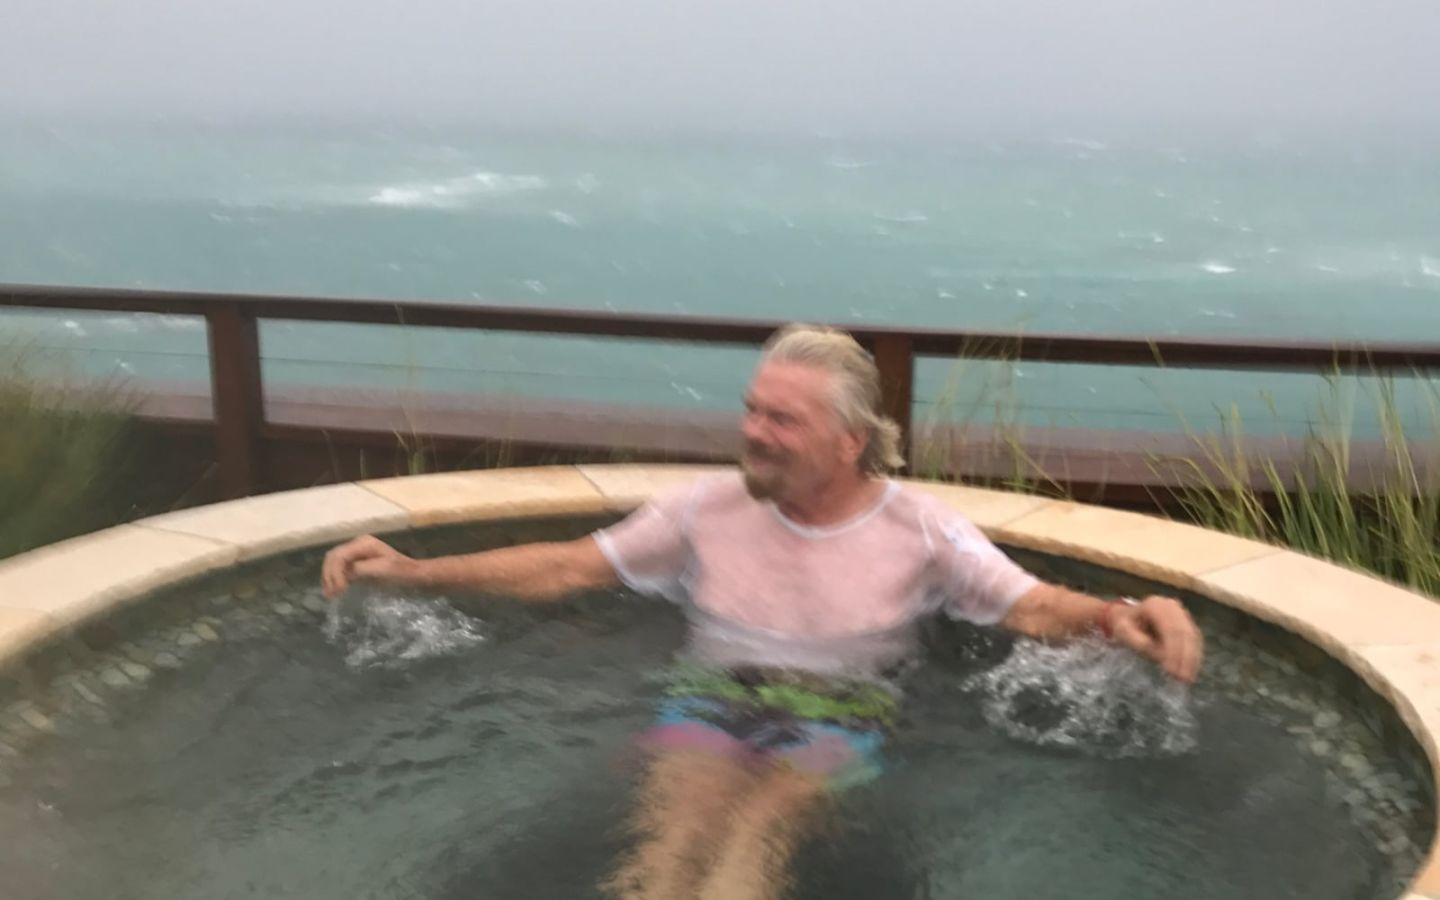 Richard Branson sitting in a hot tub on Necker island